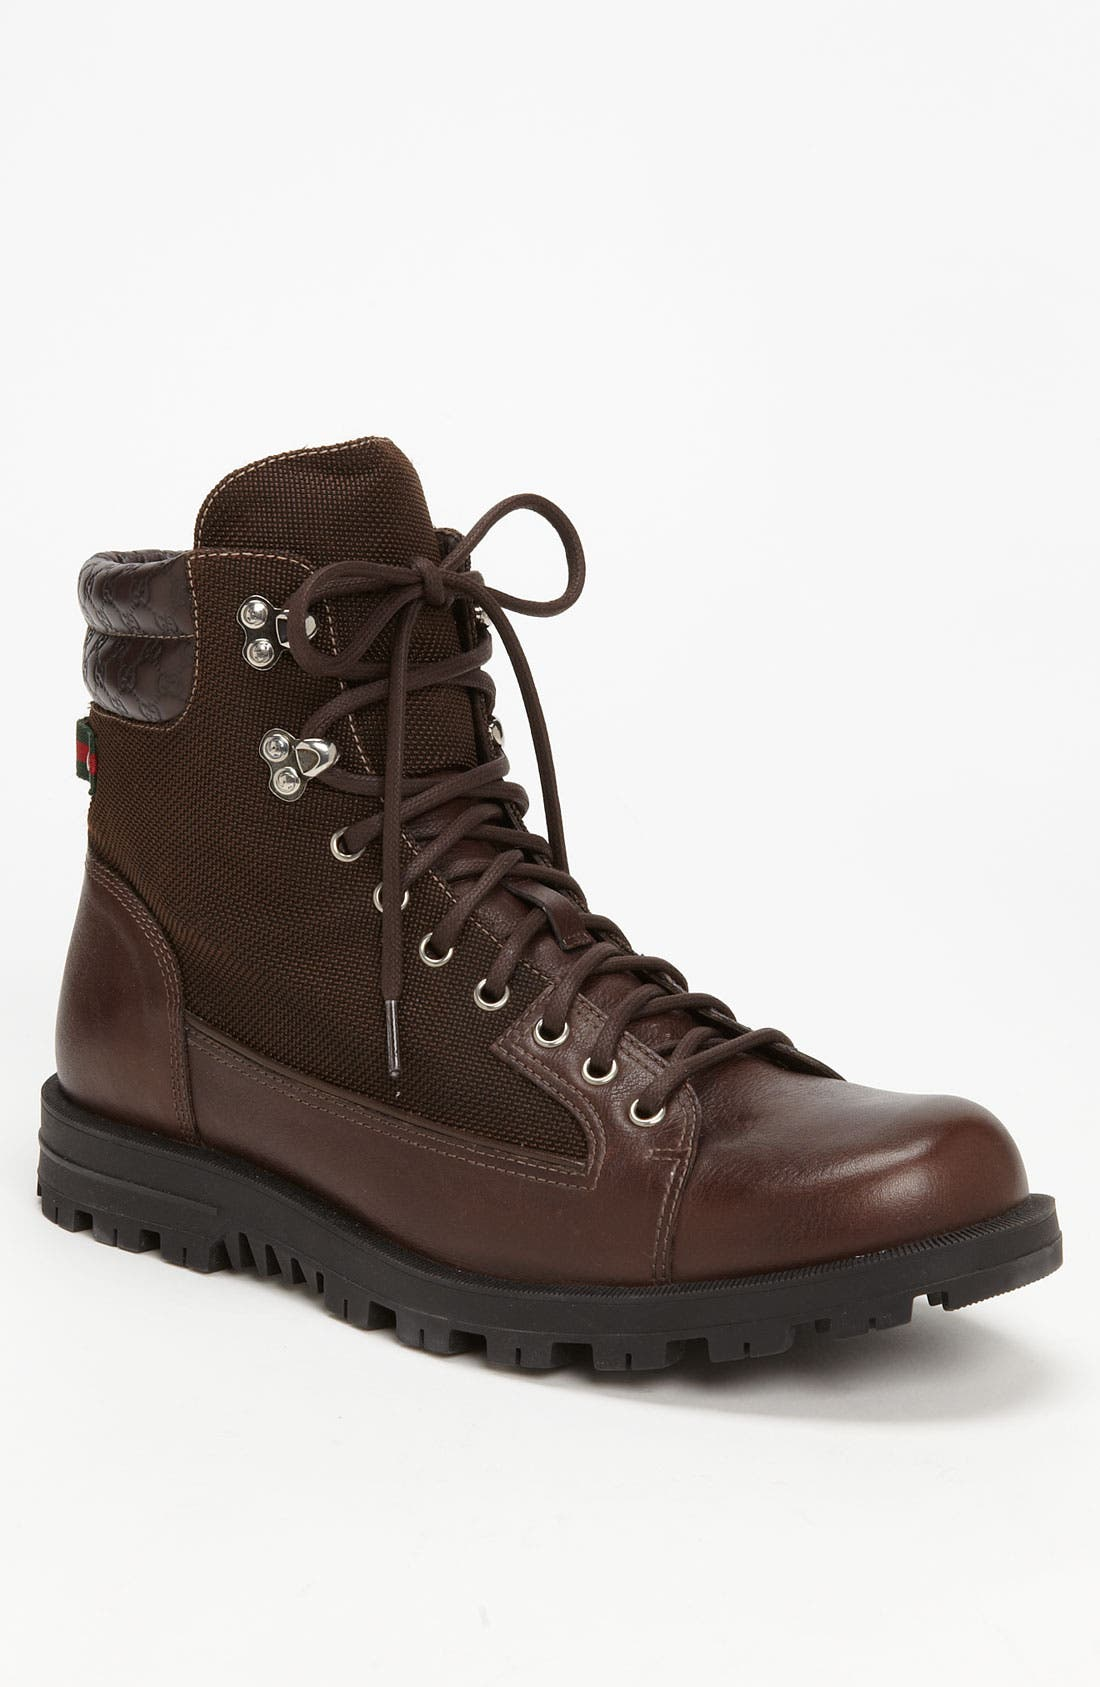 Alternate Image 1 Selected - Gucci 'Meguro' Combat Boot